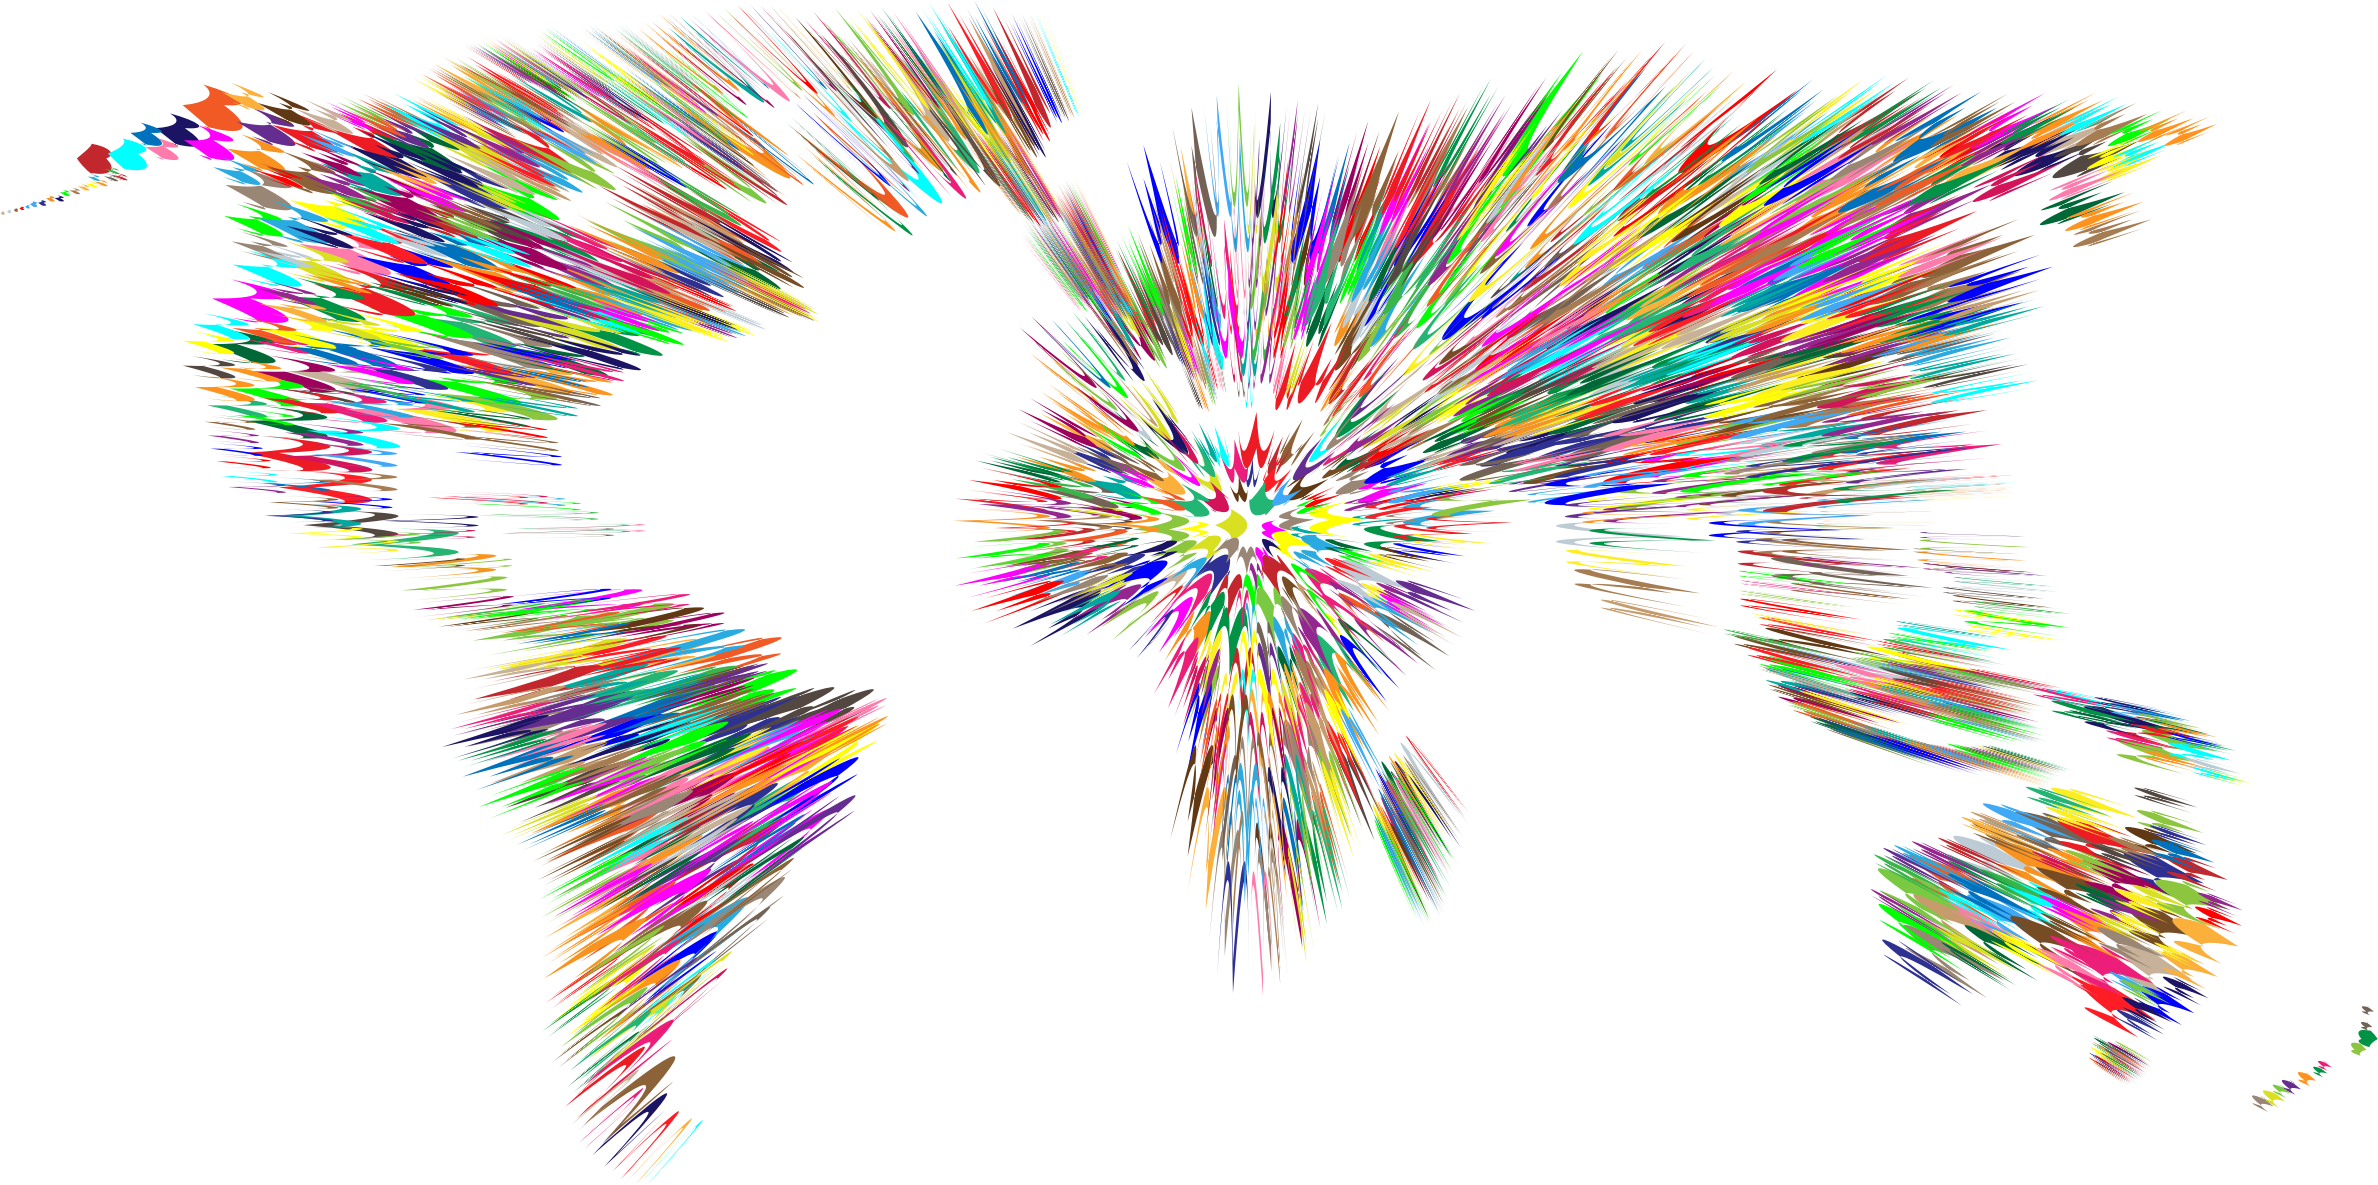 Colorful zoom motion blur world mapg 23781185 earth world map clipart png share your clipart archive and find cliparts for your design presentation and homework gumiabroncs Gallery